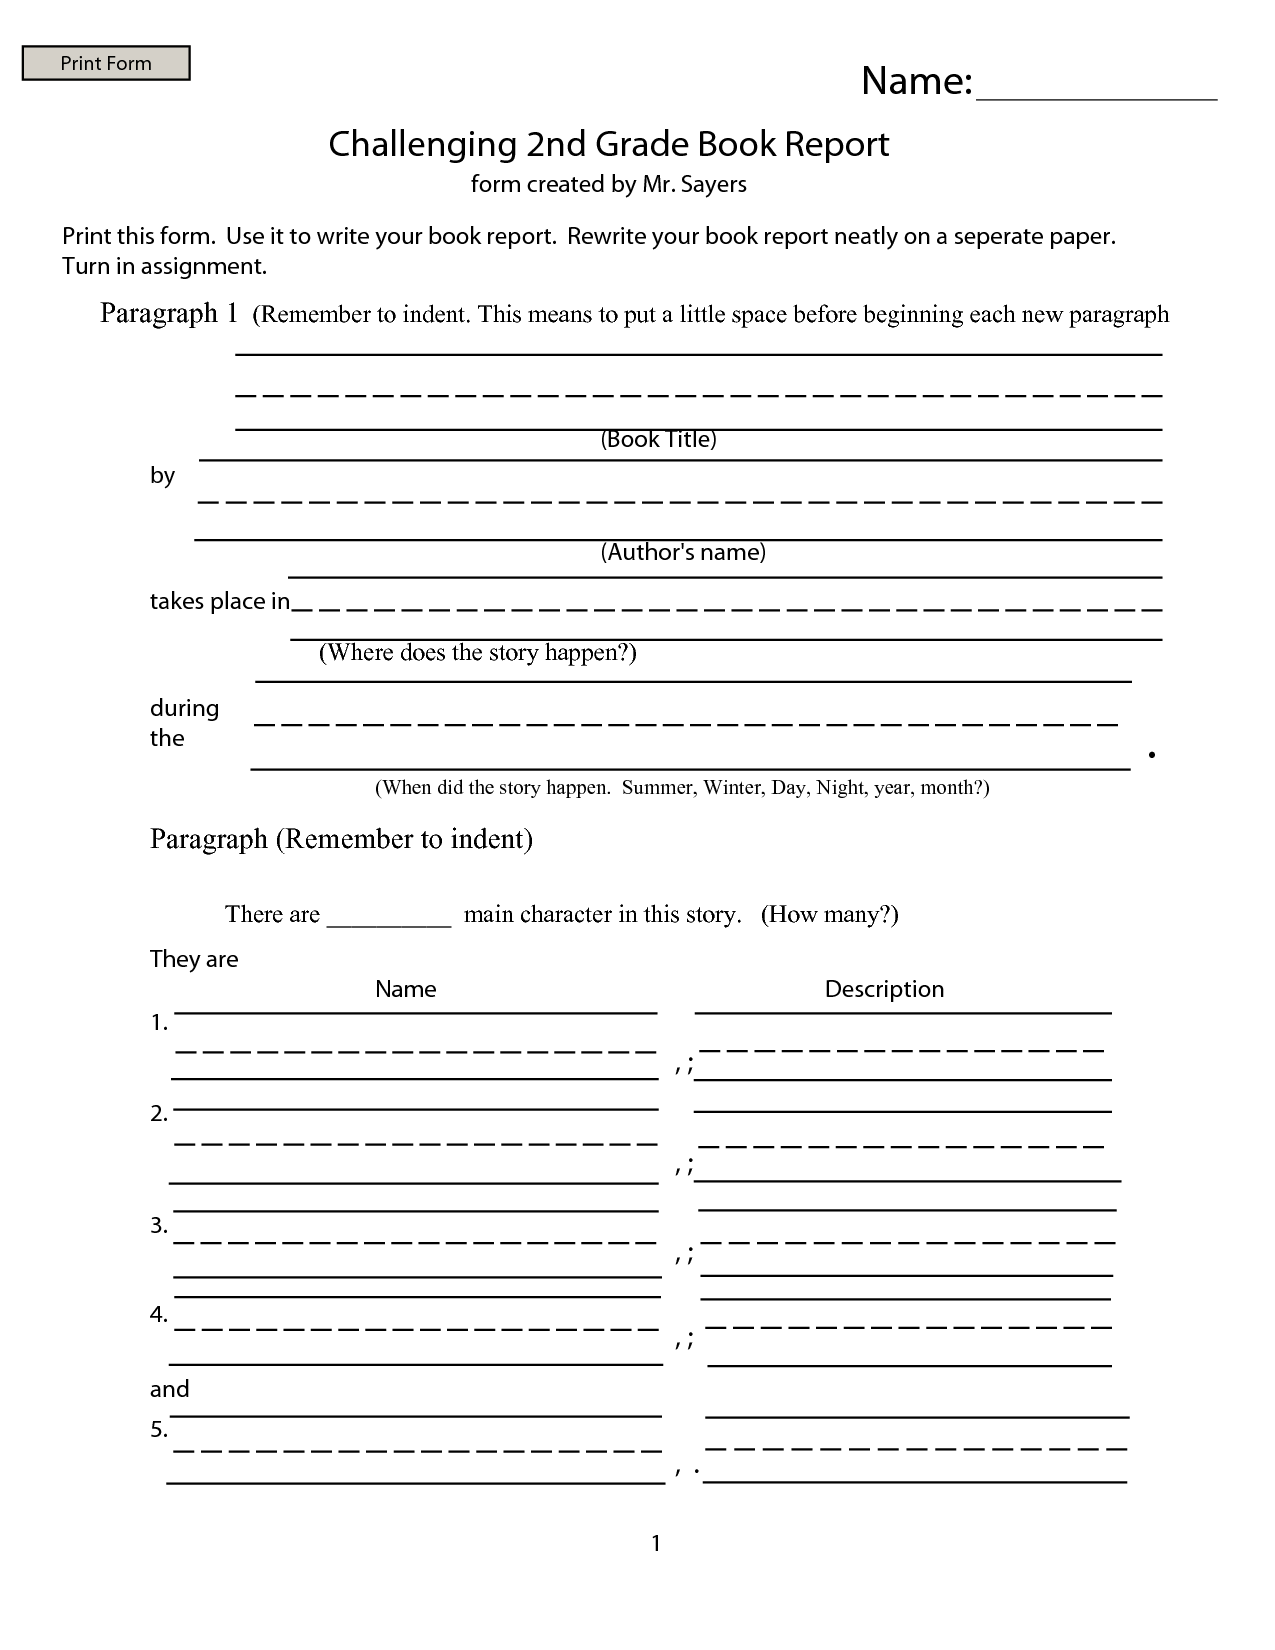 19 Best Images Of 4th Grade Book Report Worksheets